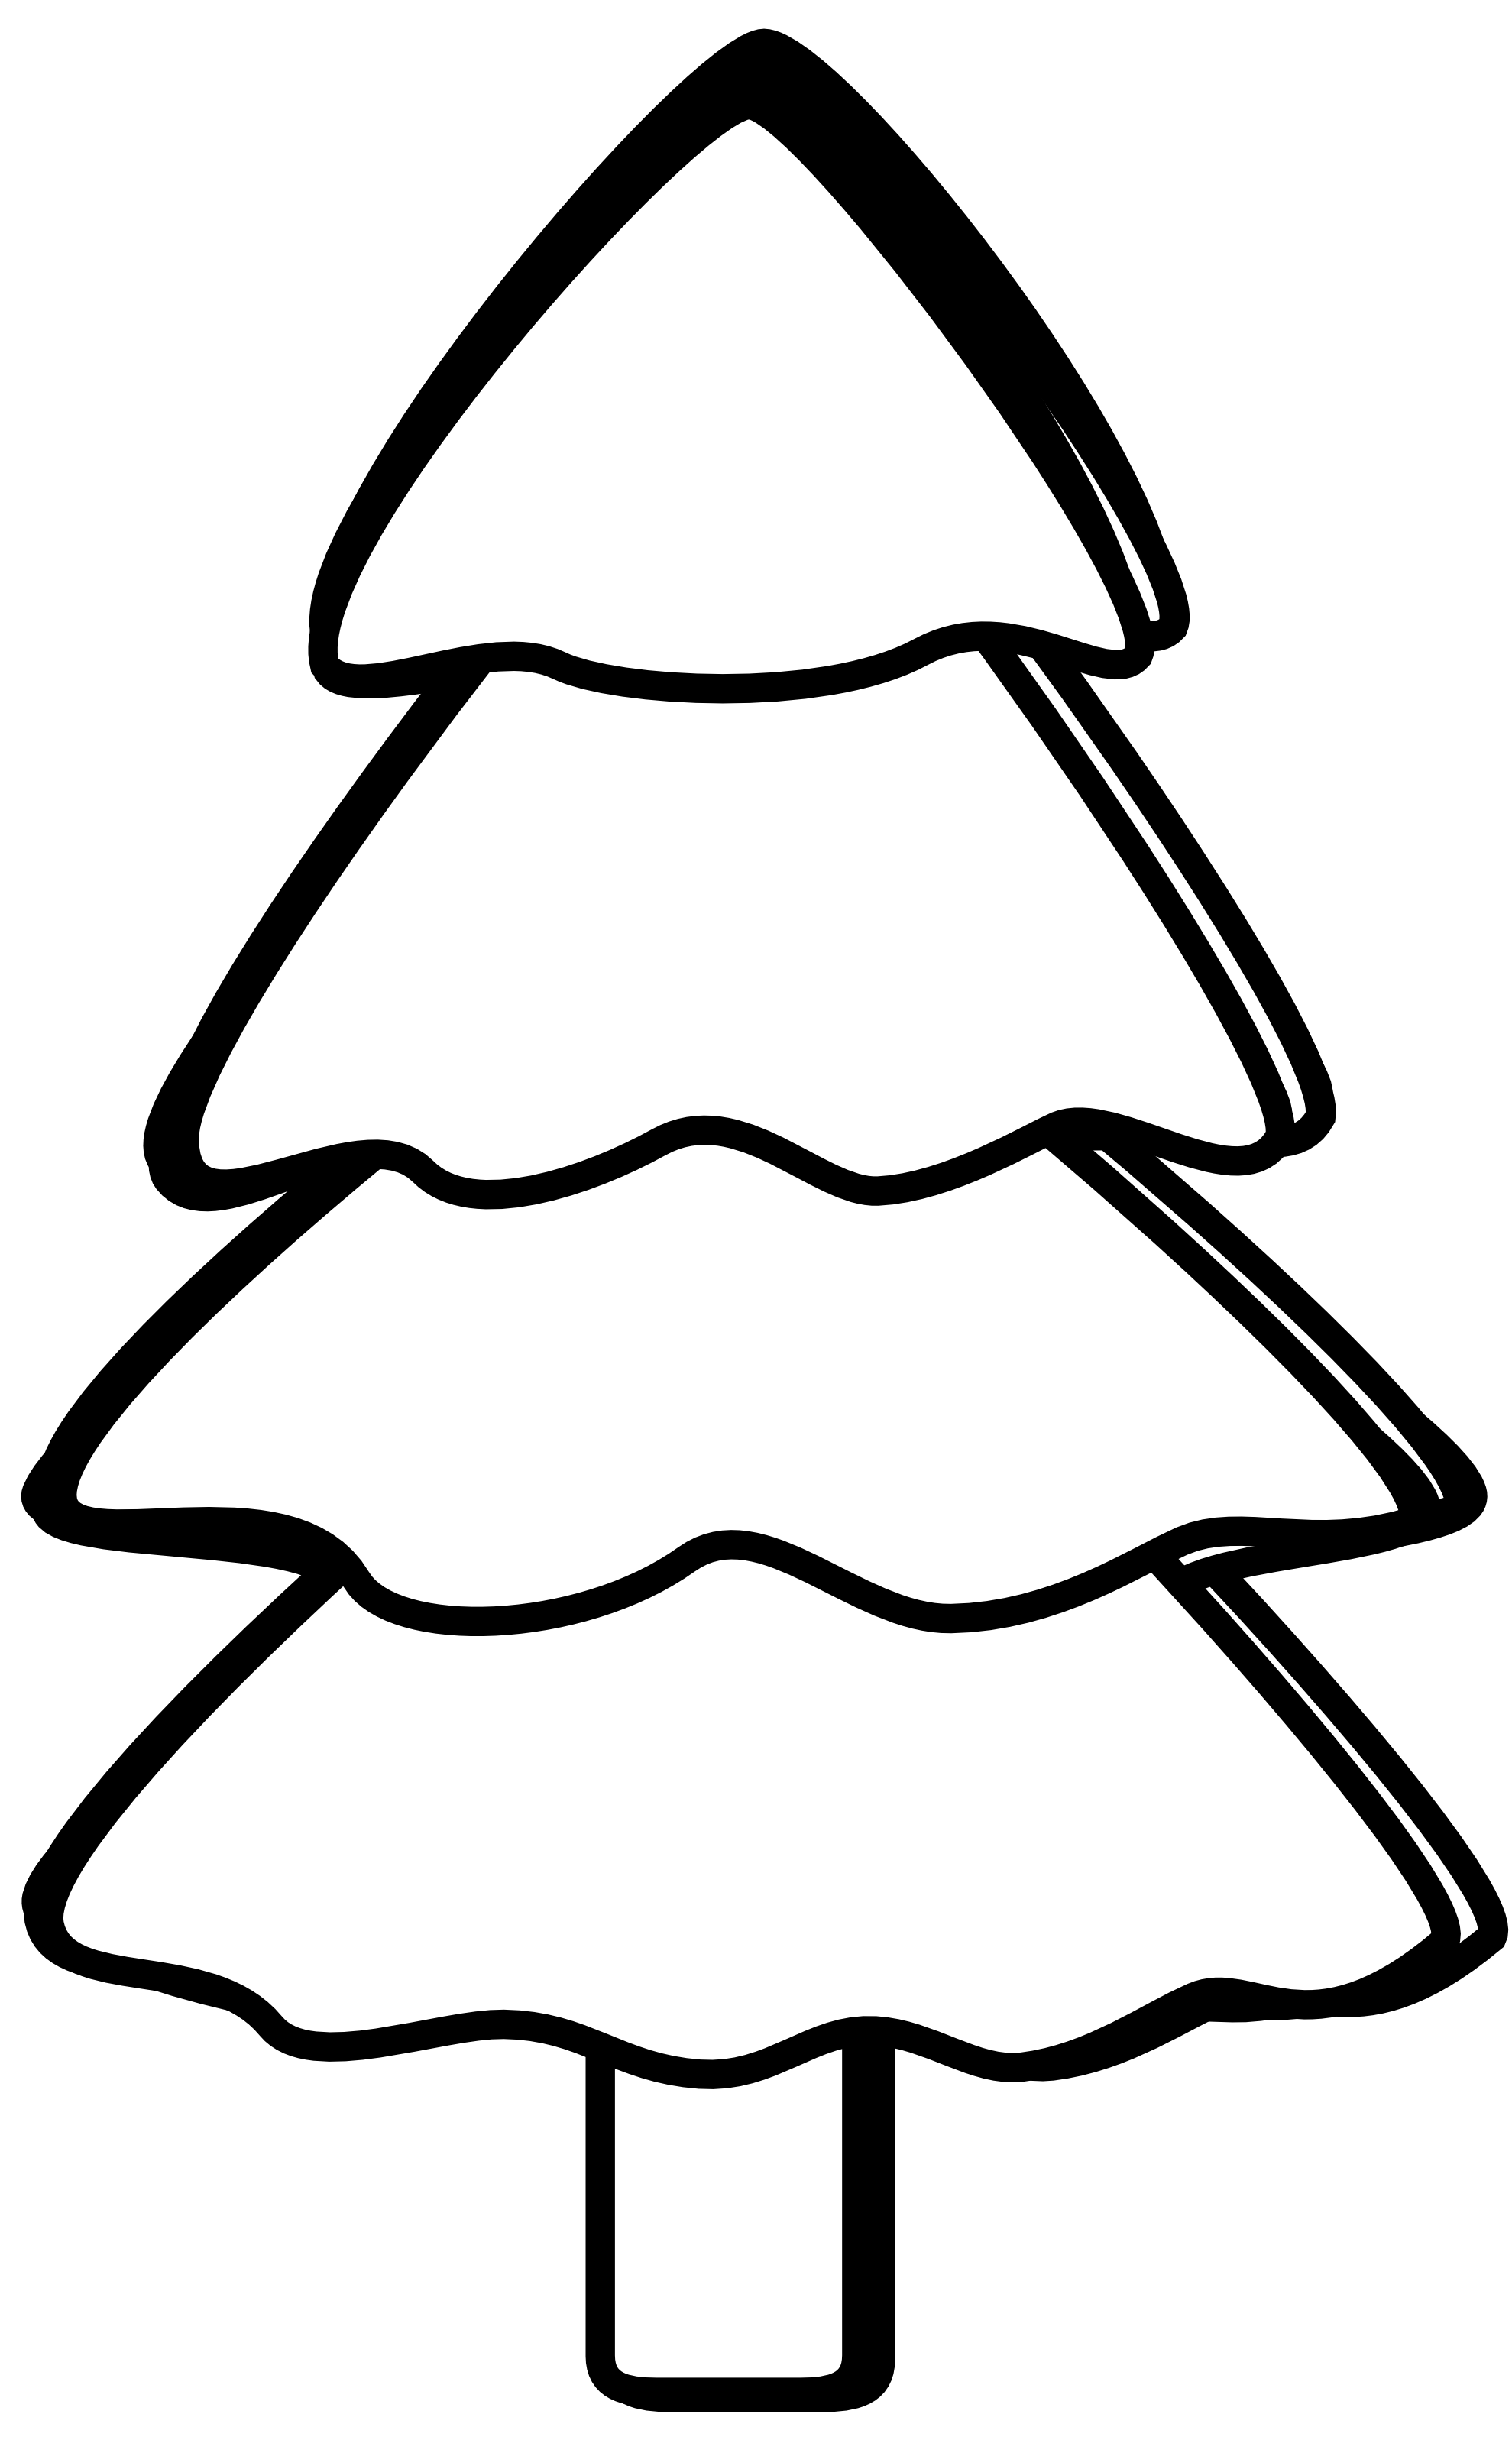 Book and glasses clipart clip art free Christmas Tree Clipart Black And White | Clipart Panda - Free ... clip art free